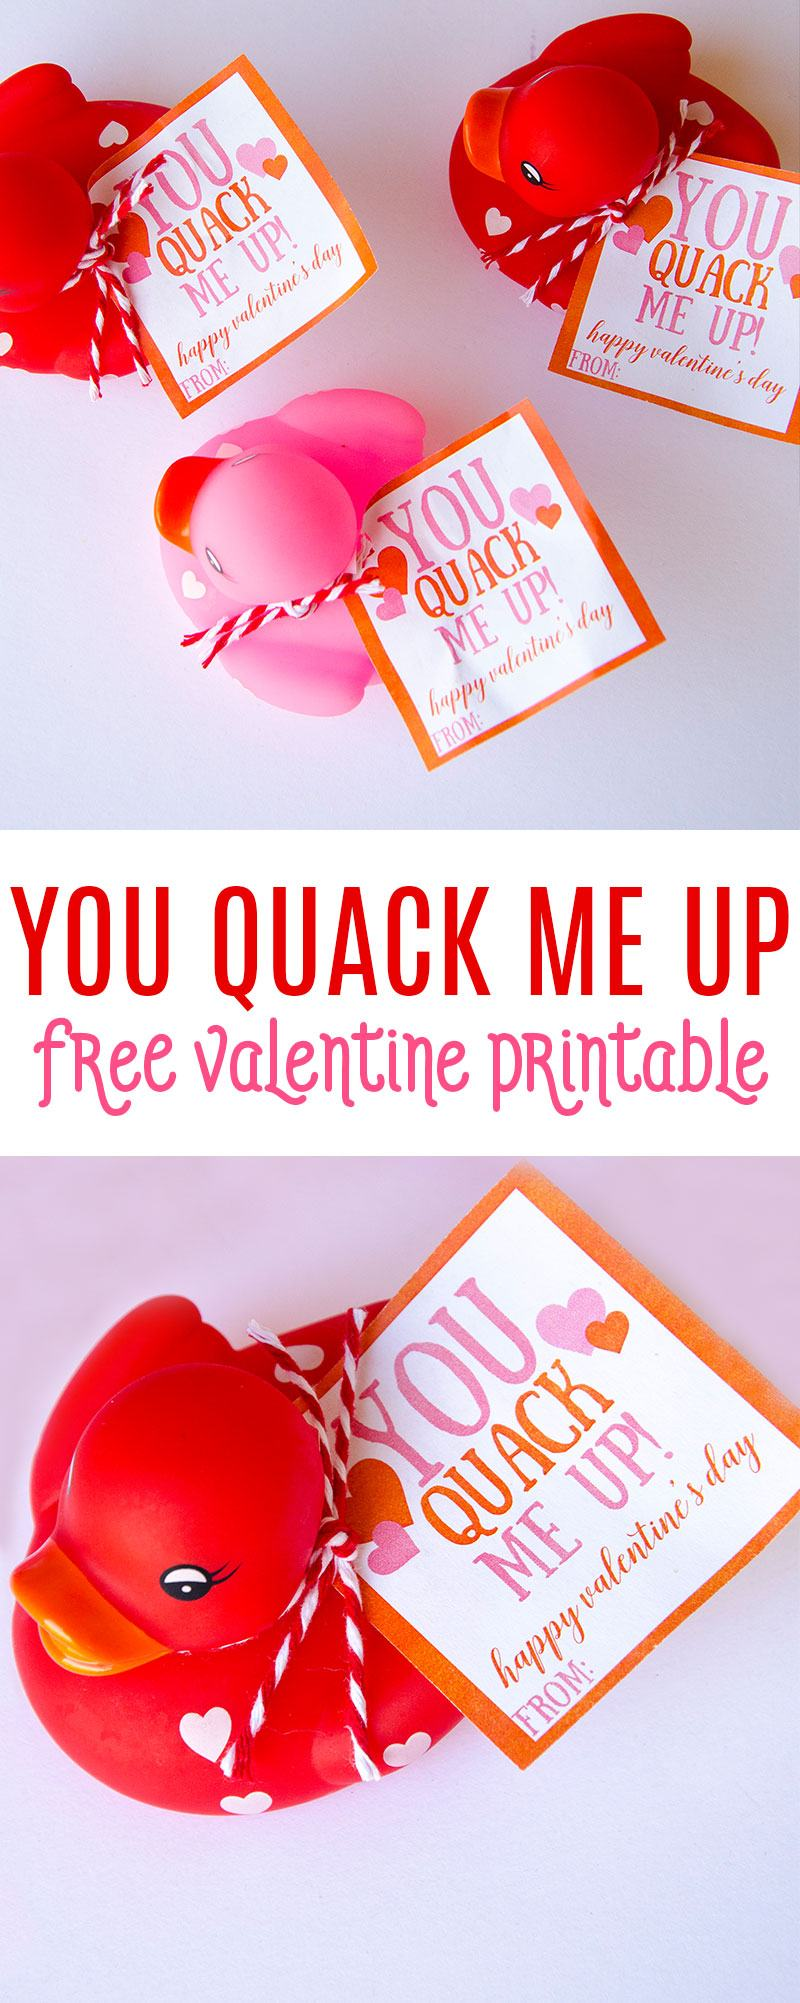 Rubber Duck Valentine Idea by Lindi Haws of Love The Day